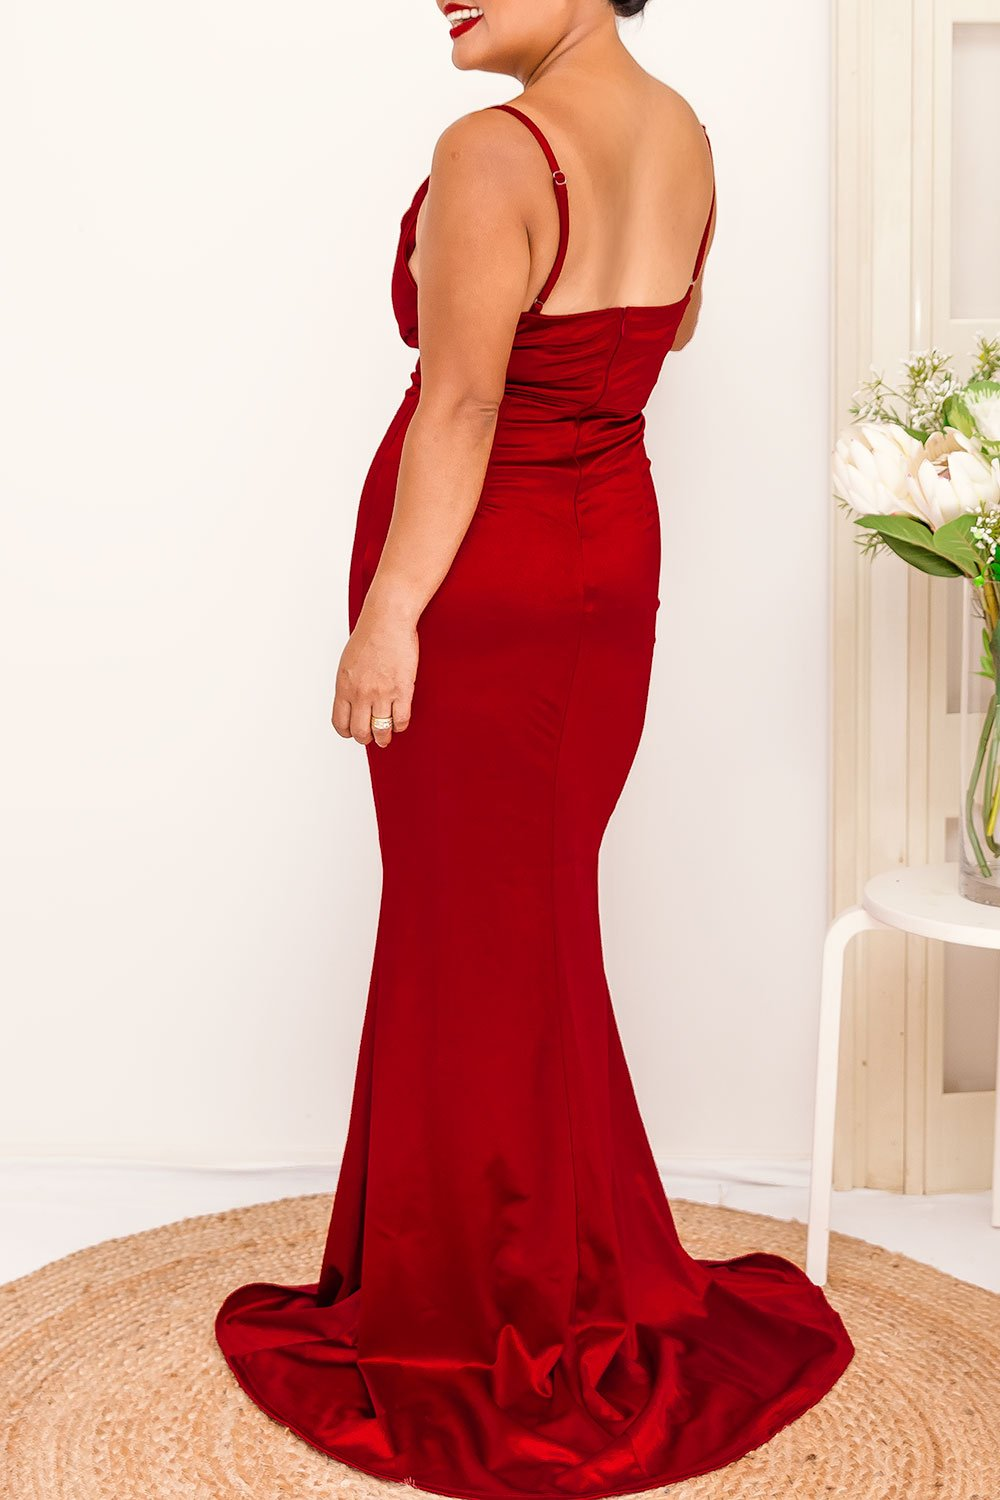 - Concealed back zip - Fabric has stretch - Fitted-through bodice, waist and hips; floor-length - Cowl Neckline - Smooth shiny fabric - Thin adjustable shoulder straps - Padded bust with cowl neckline